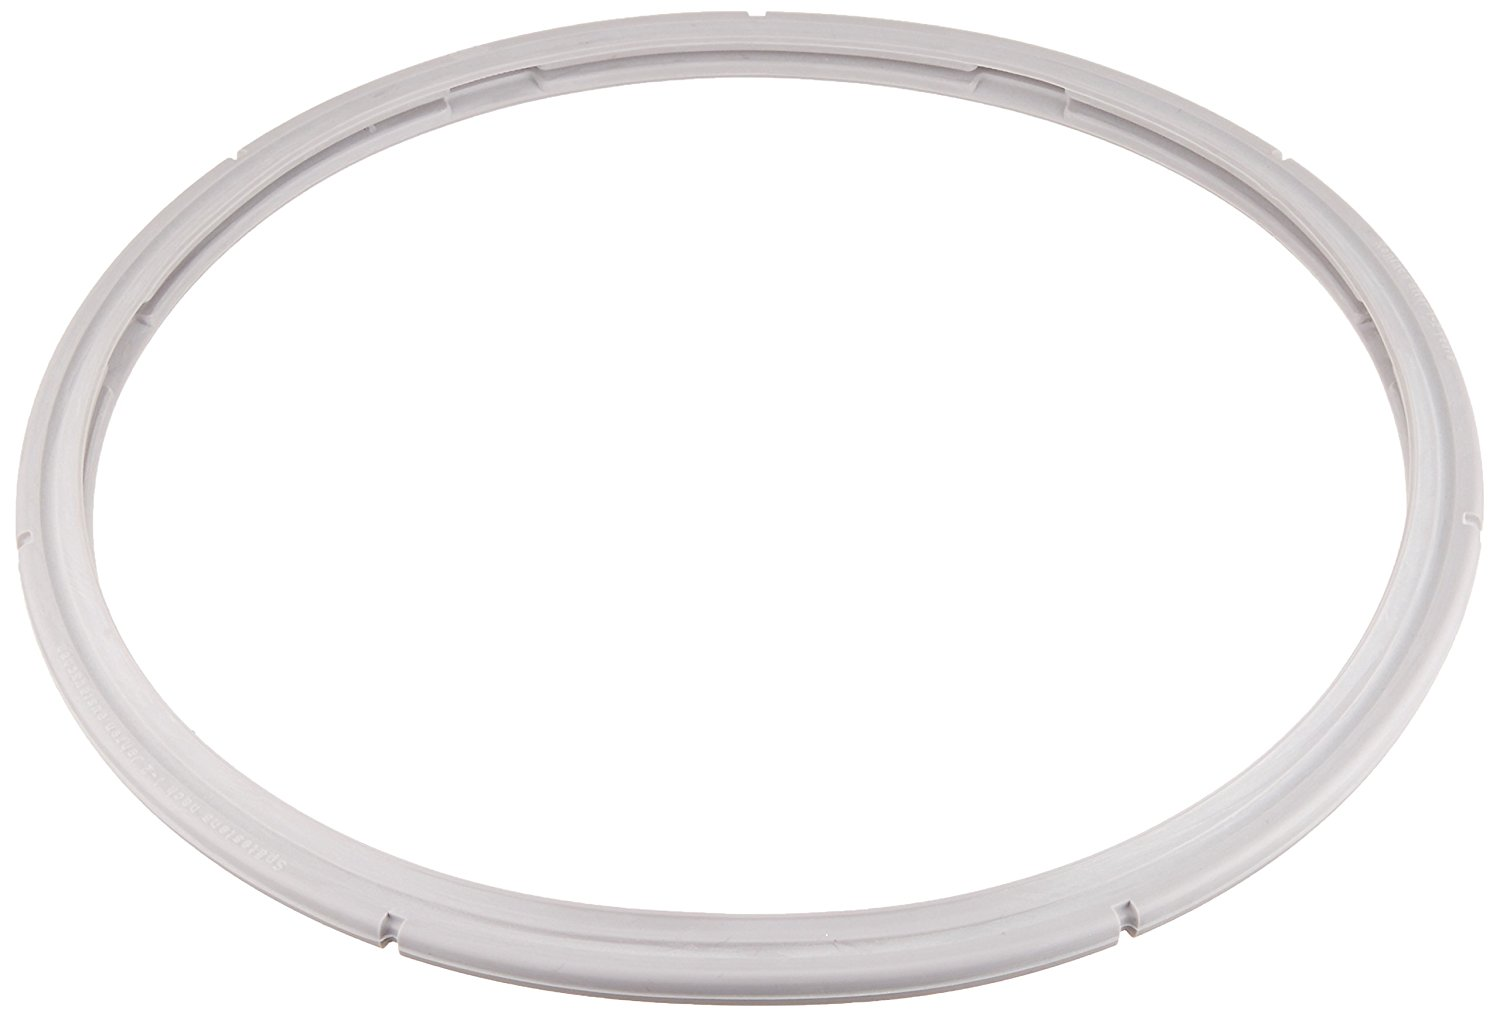 Fissler pressure cooker cm silicone replacement gasket